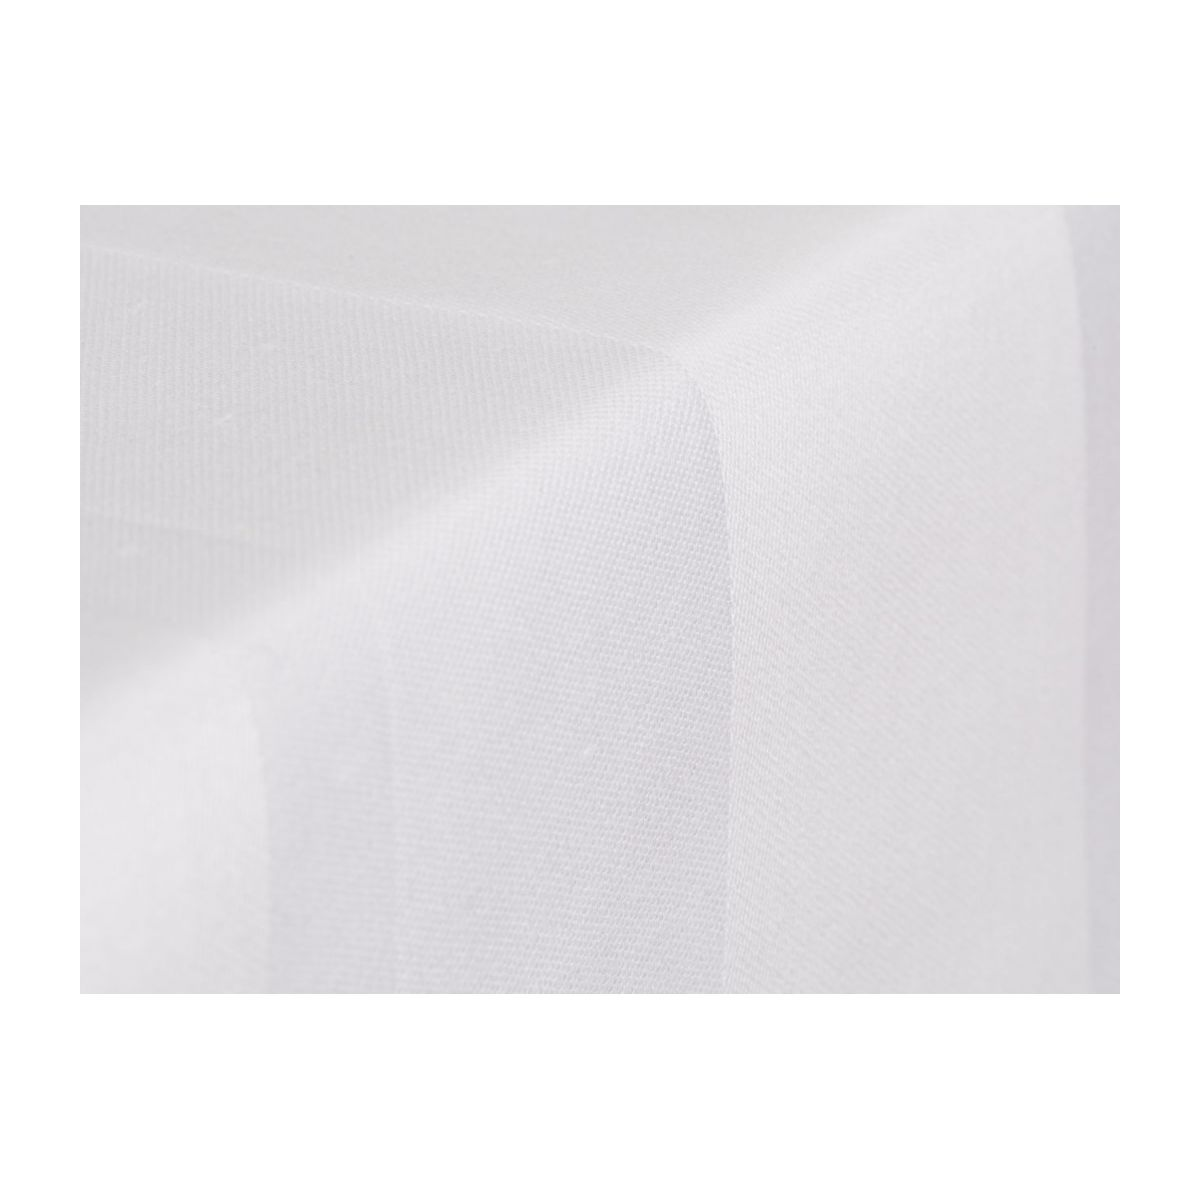 Nappe 270x180cm blanche n°2